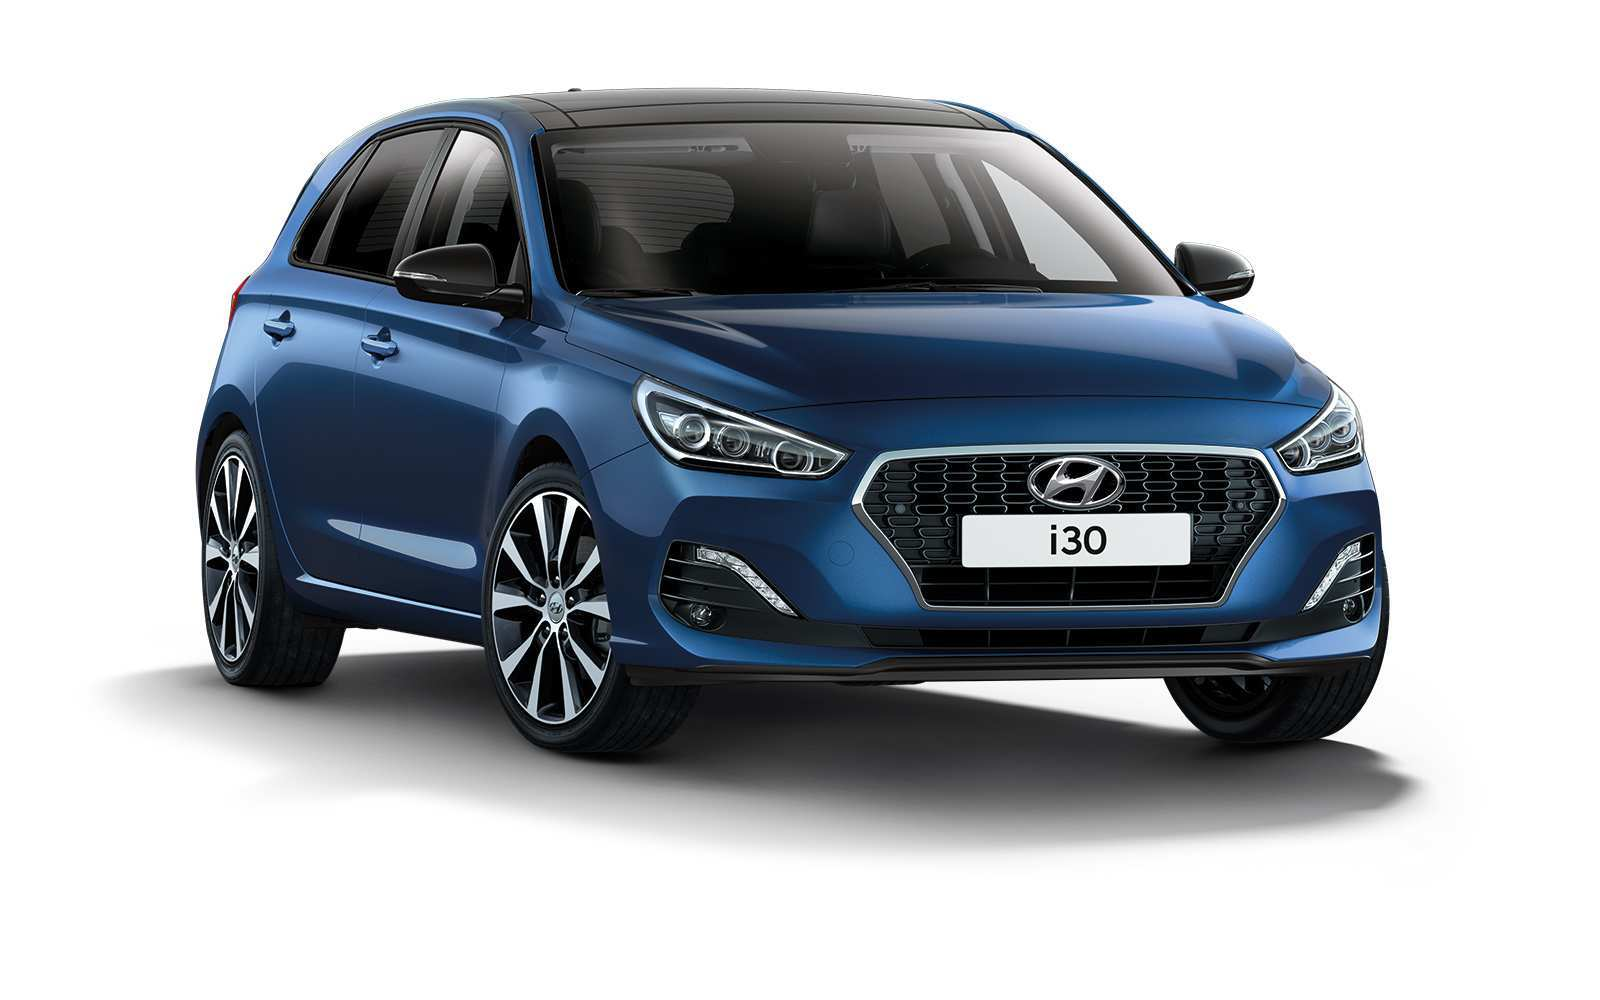 66 All New 2019 Hyundai I20 Rumors